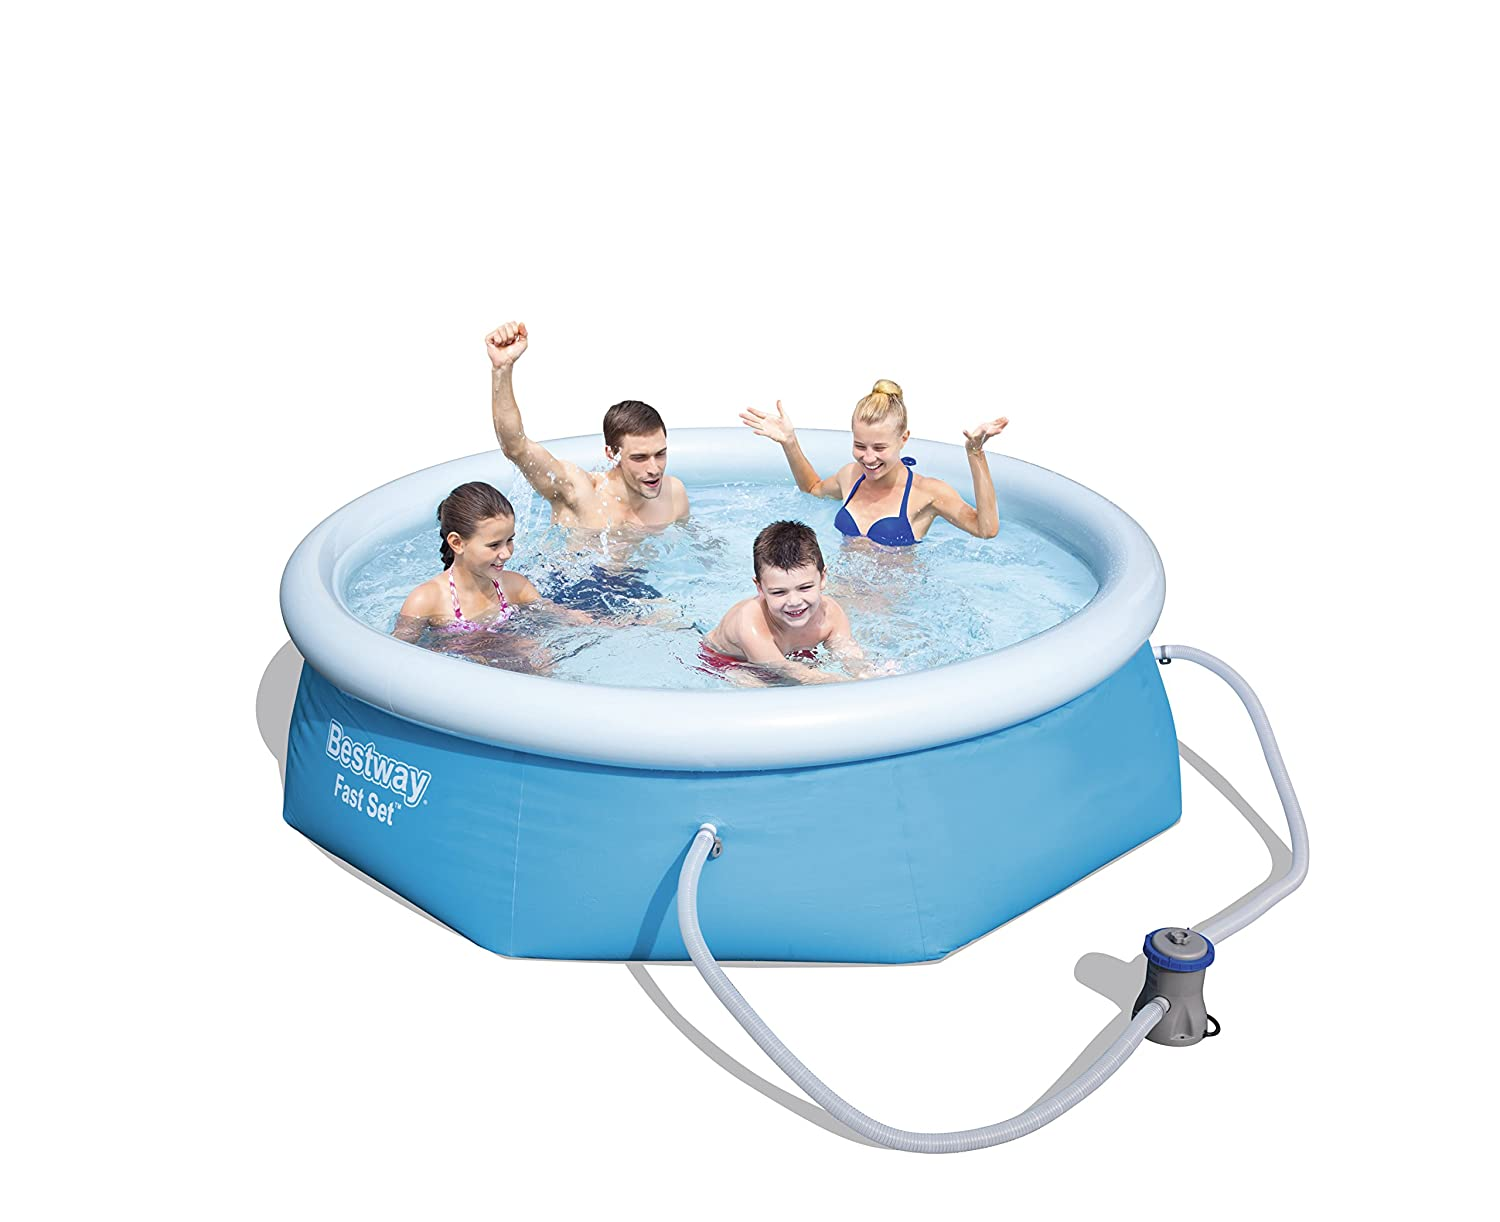 Bestway Fast Set Pool Set Mit Filterpumpe 244 X 66cm: Amazon.de: Garten